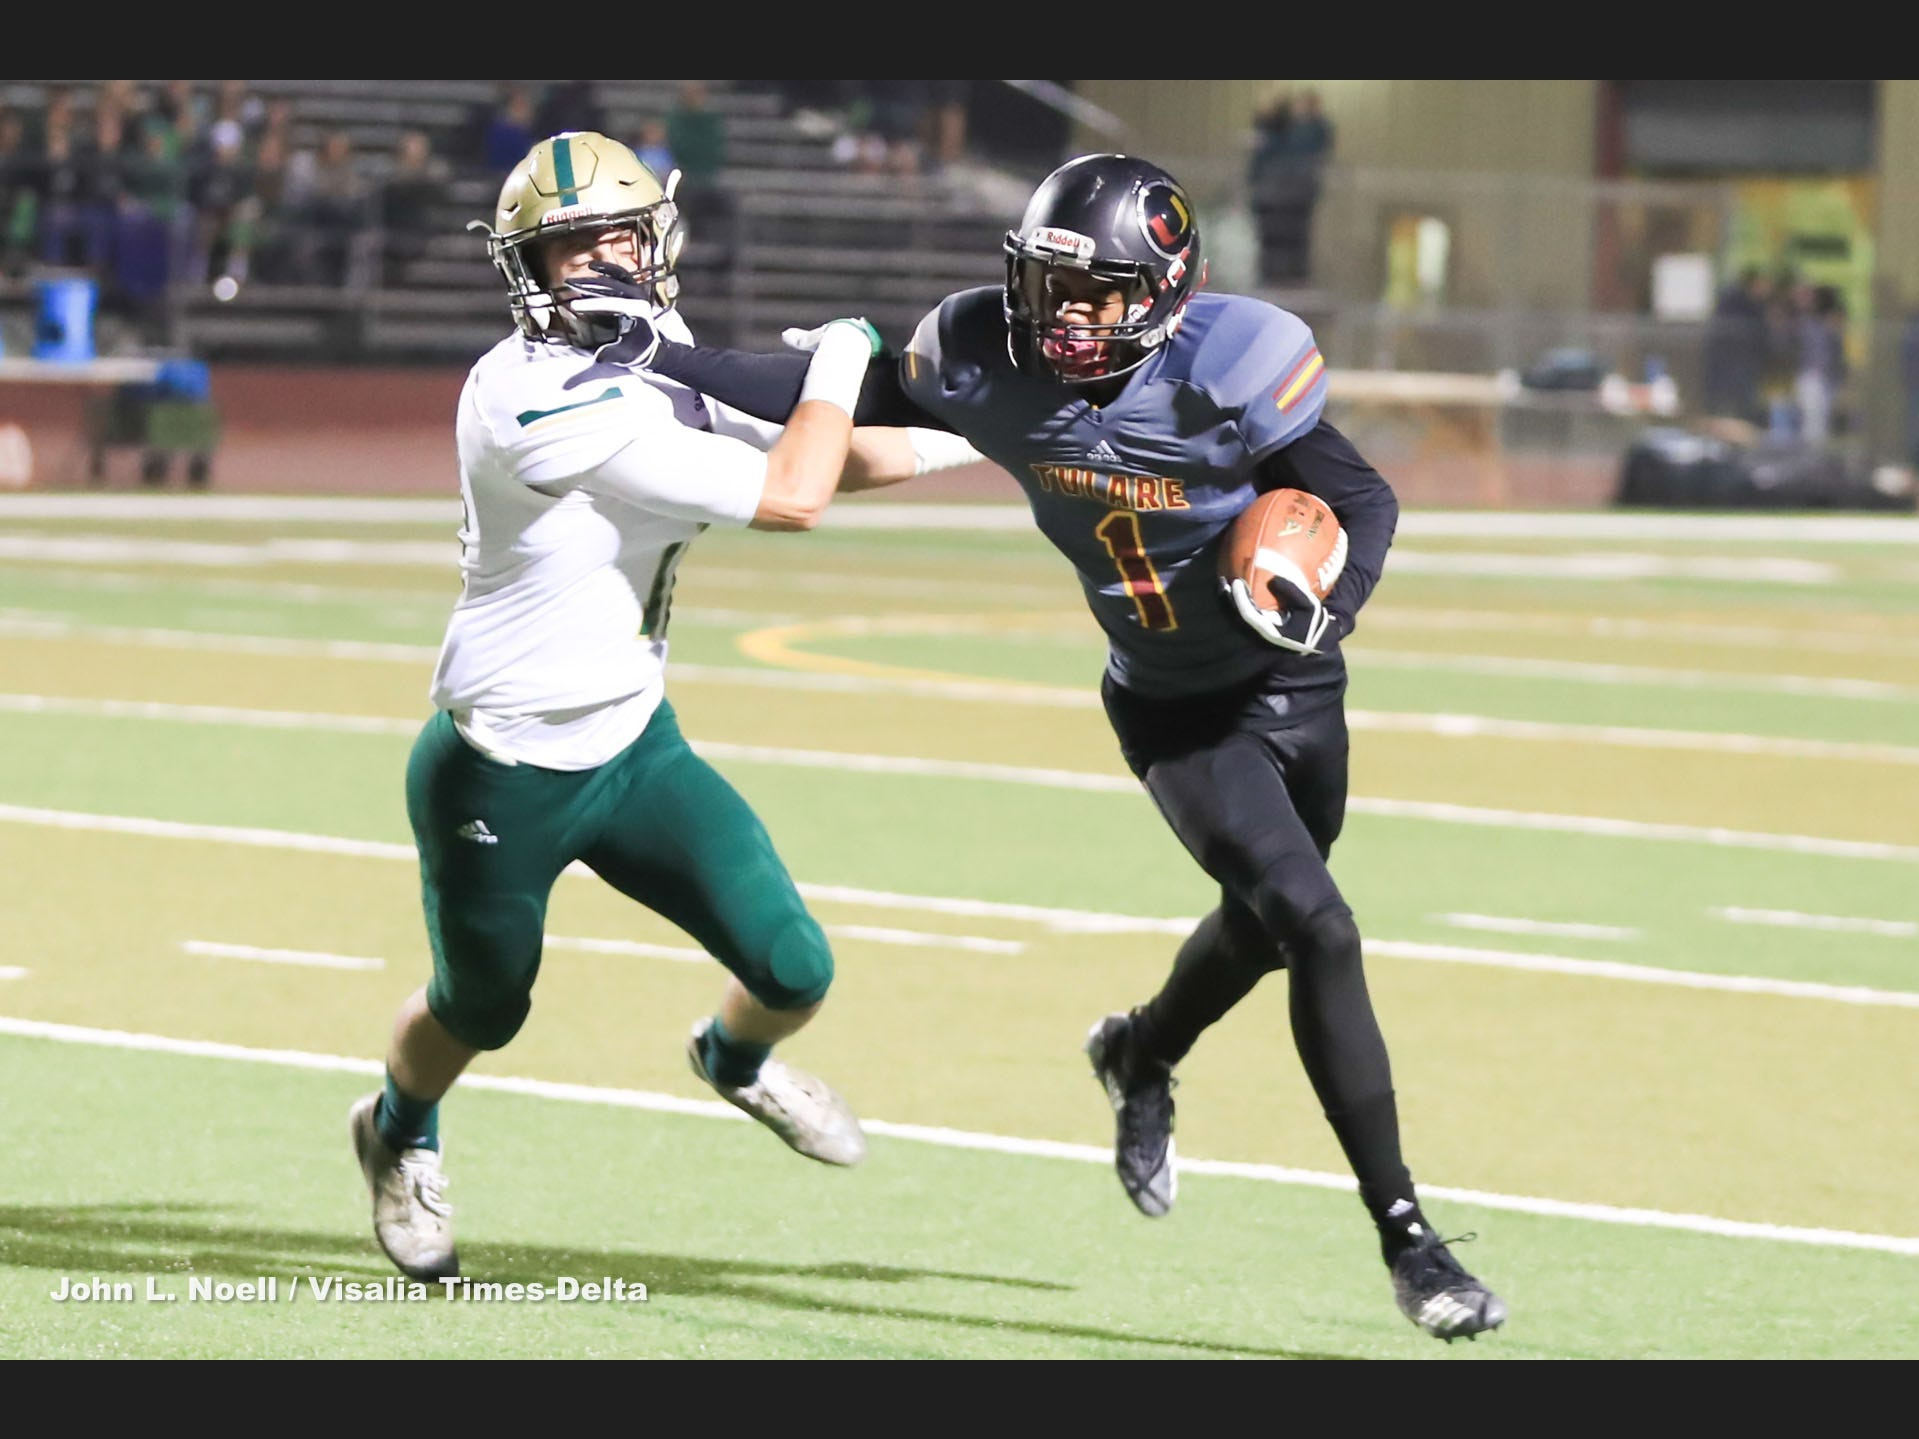 Tulare Union's  Willie James (1) straight arms Nick Sill (11) from Garces Memorial in a Central Section Division II quarterfinal high school football game at Bob Mathias Stadium on Nov 9th, 2018.